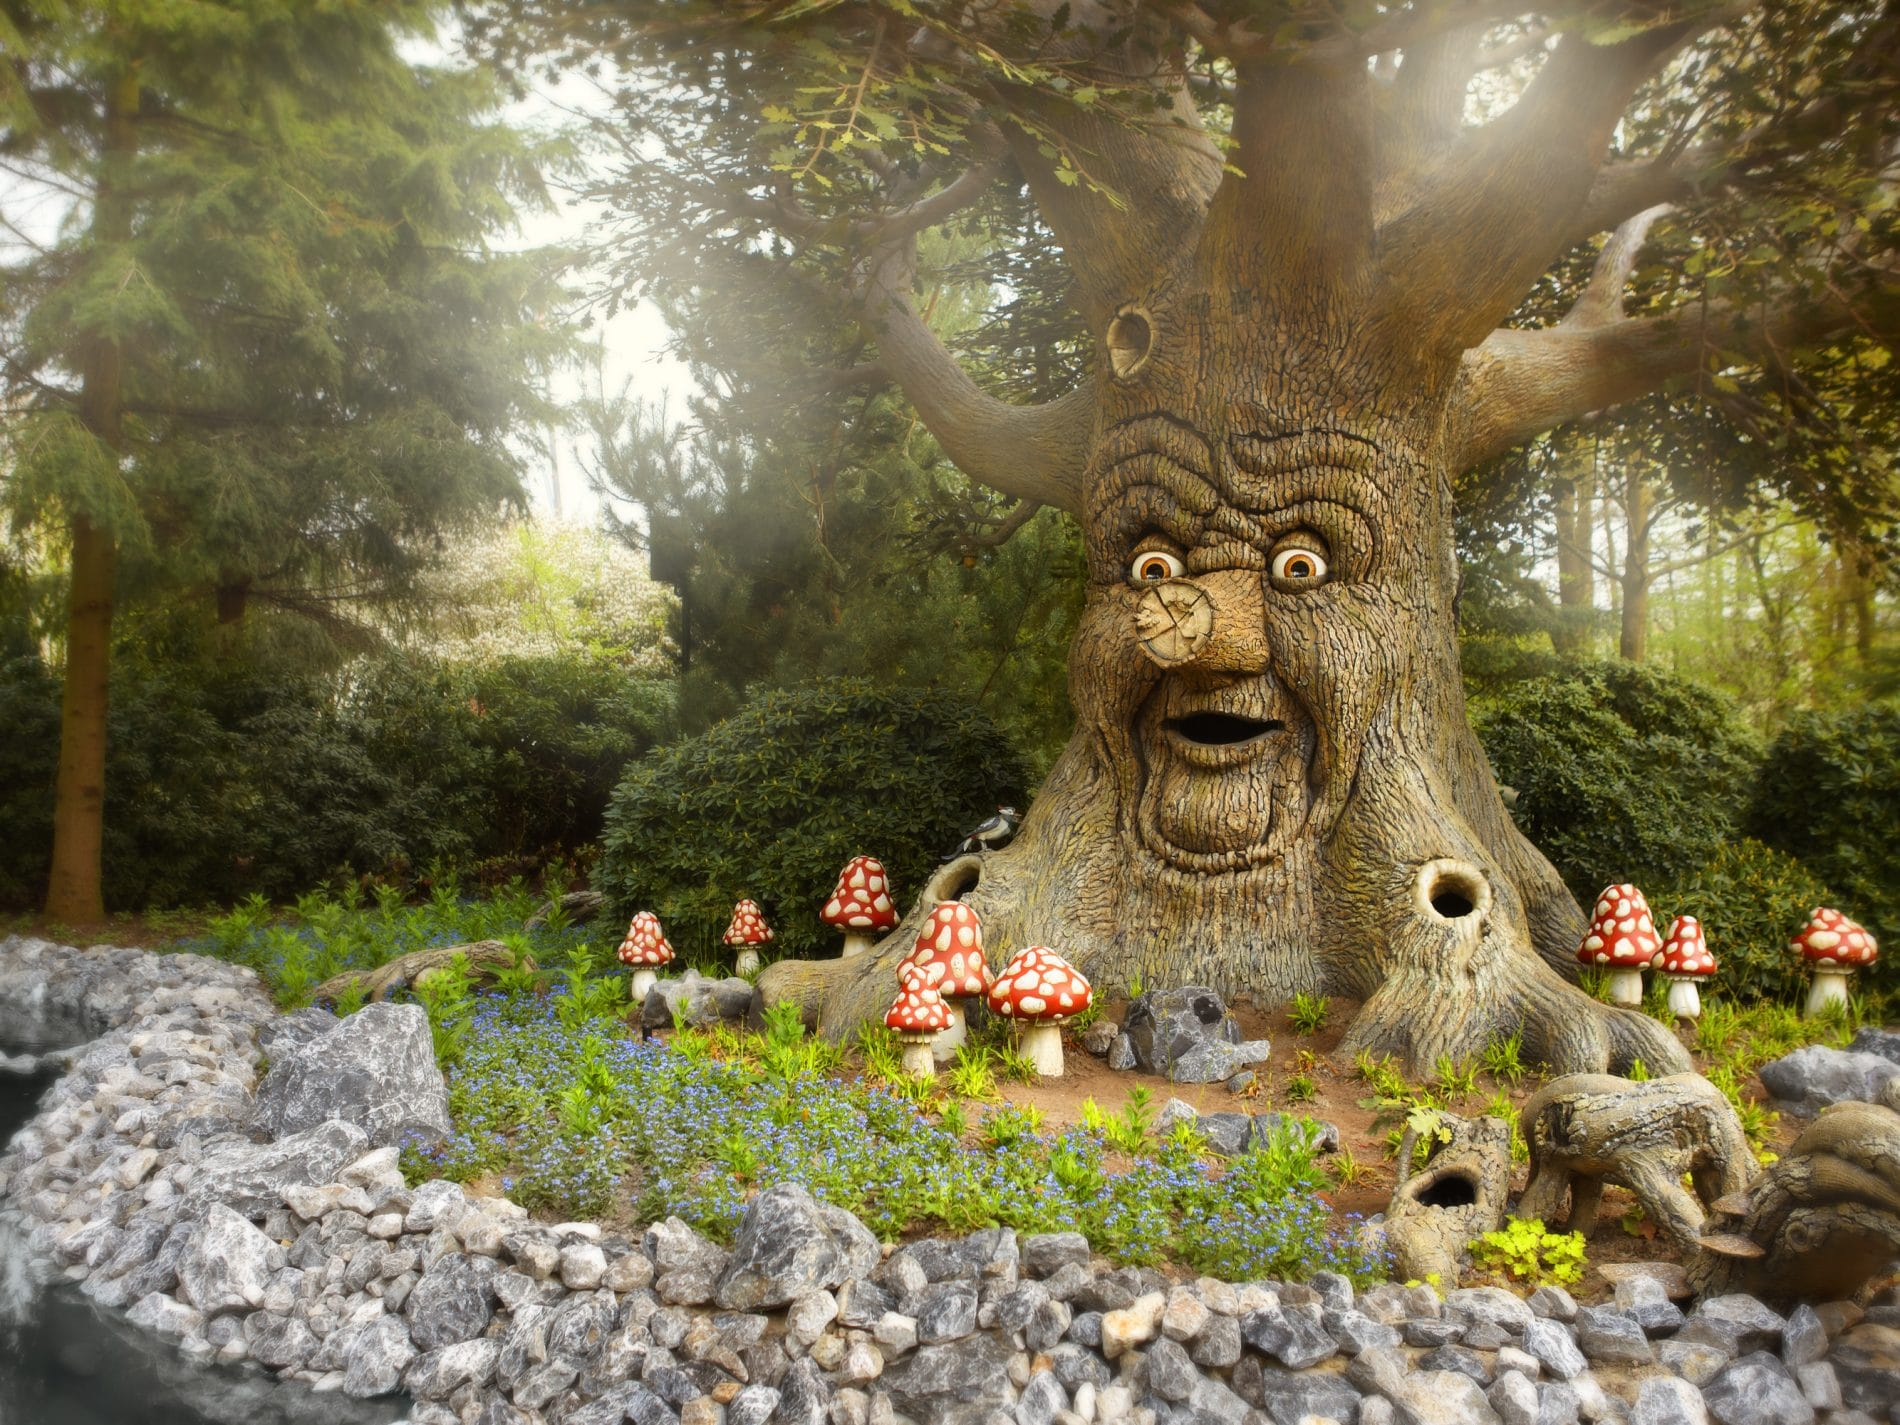 Fairytale tree at Efteling